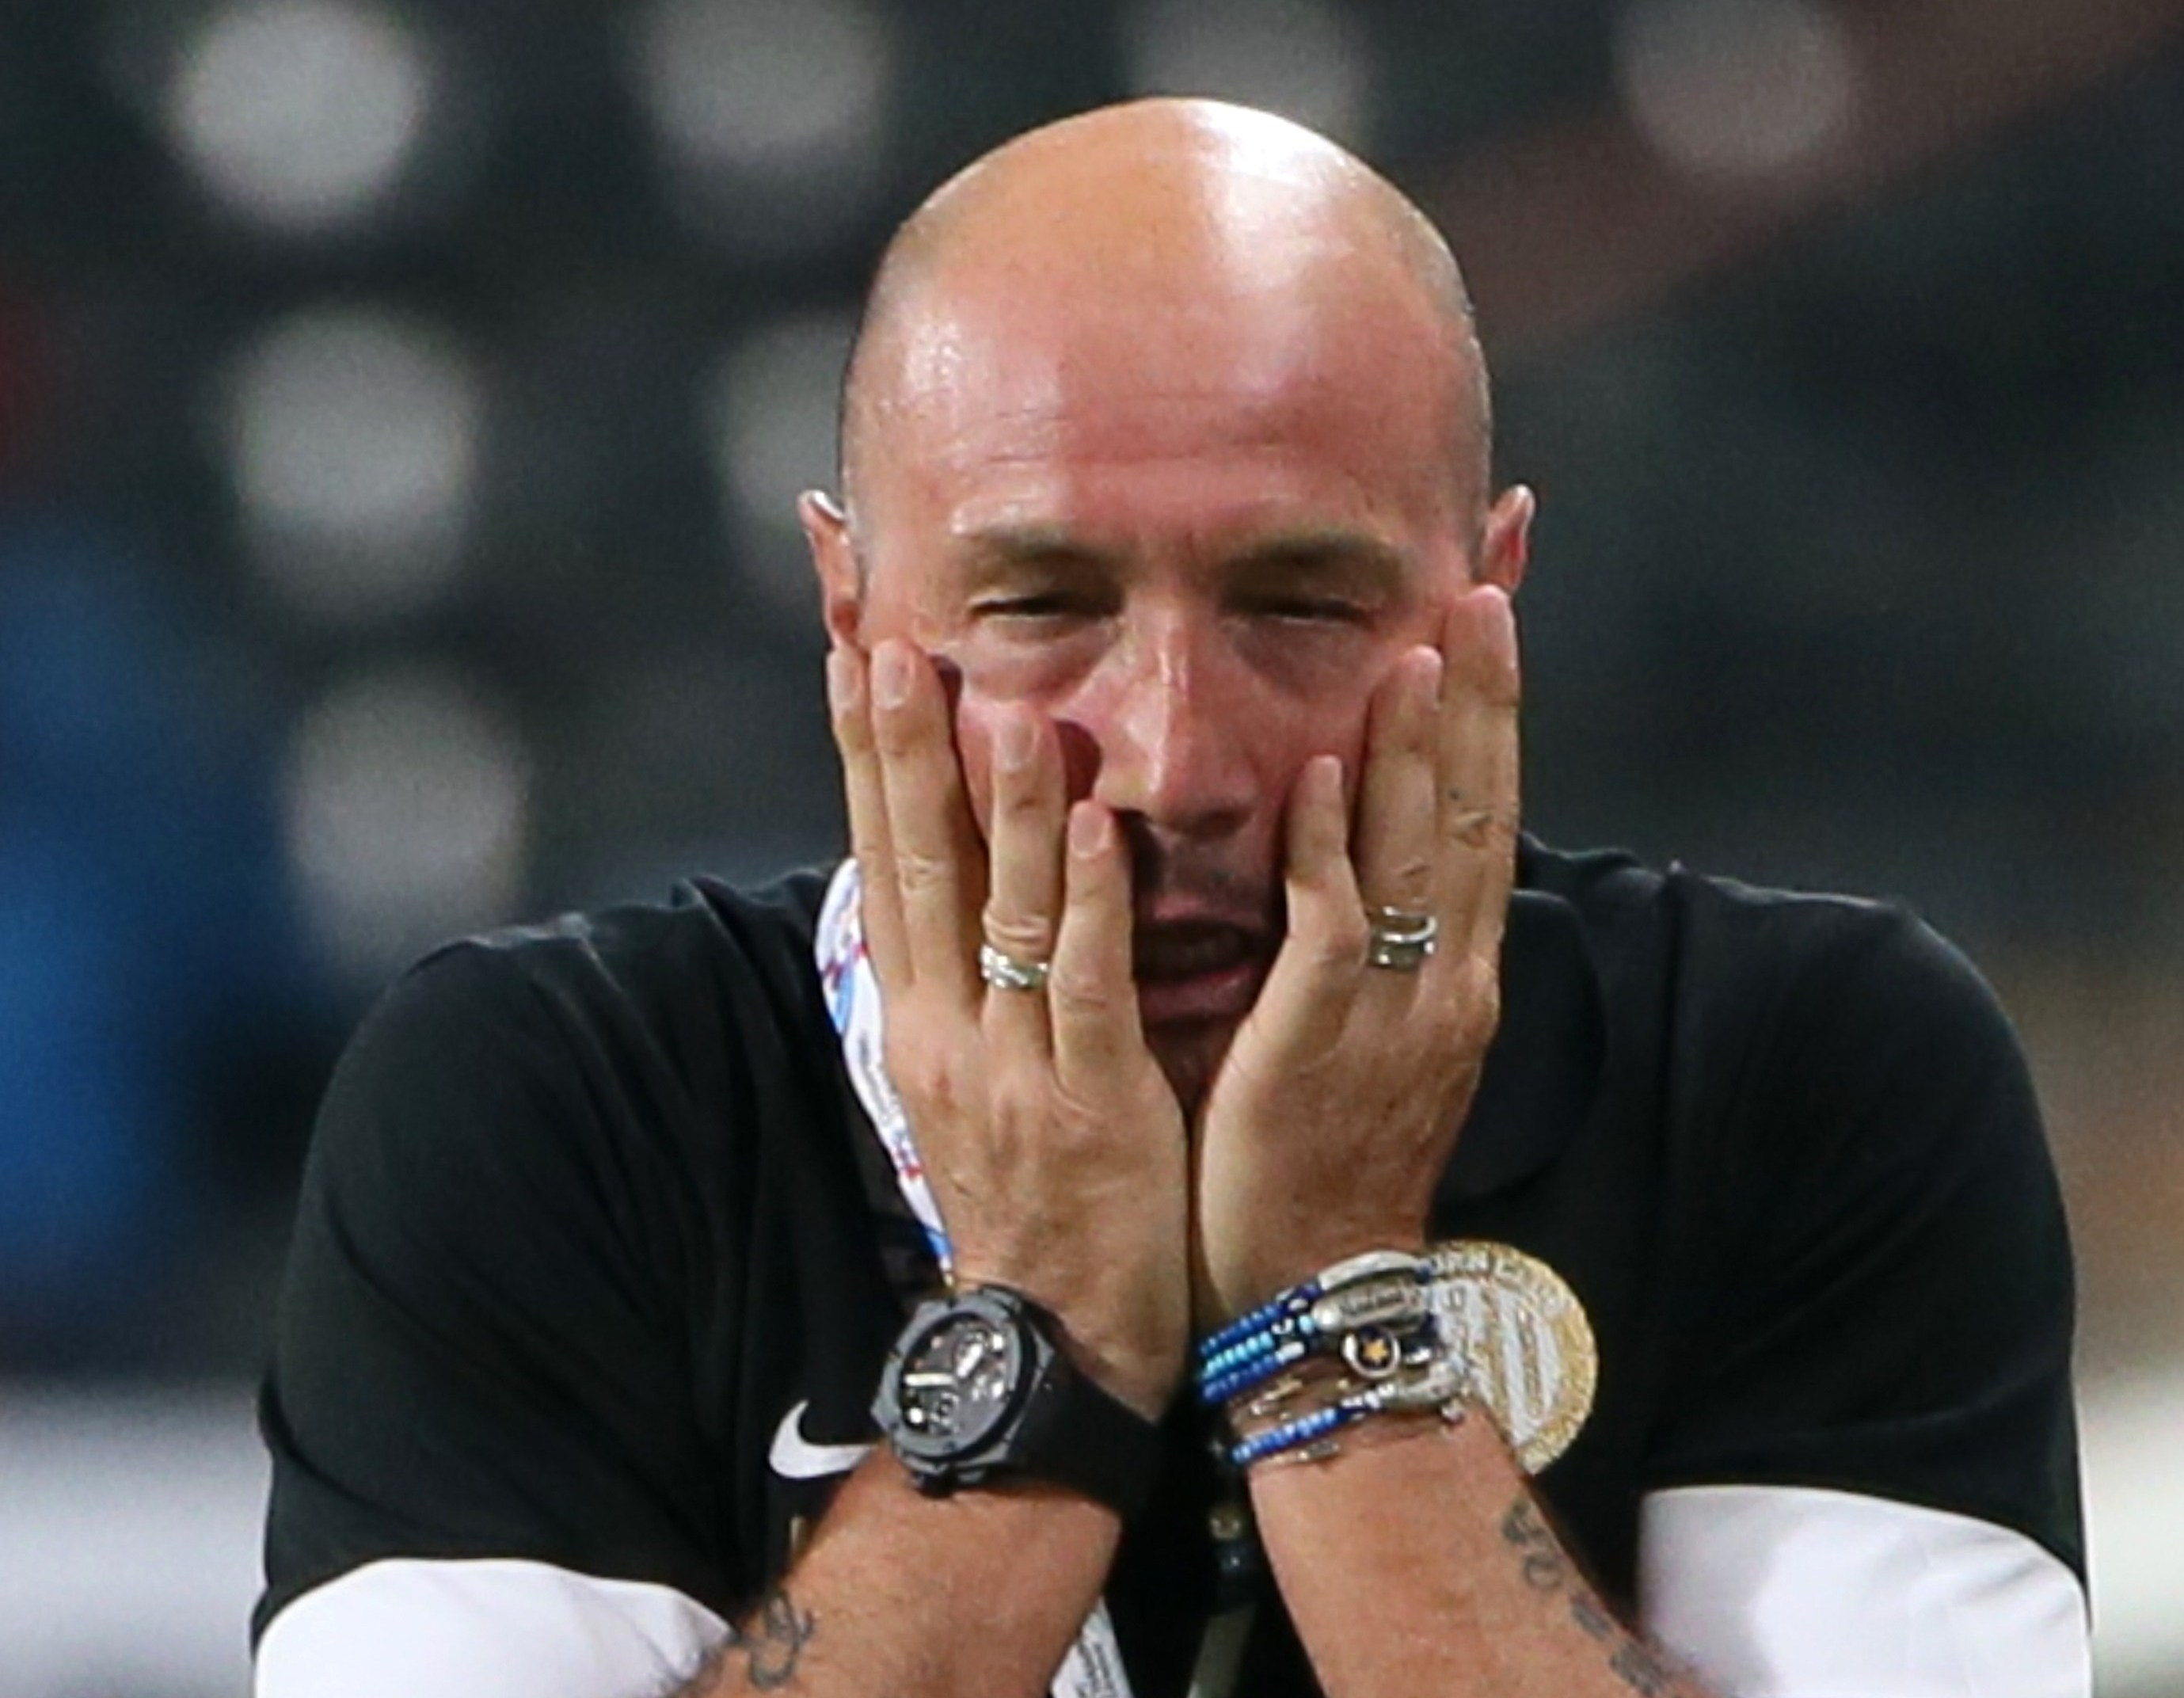 UAE's al-Jazira's coach Walter Zenga reacts during his team's AFC Champions League football match (knockout stage of the first leg) against UAE's al-Ain's on May 6, 2014 at Sheikh Mohammed Bin Zayed Stadium in Abu Dhabi. AFP PHOTO/KARIM SAHIB        (Photo credit should read KARIM SAHIB/AFP/Getty Images)